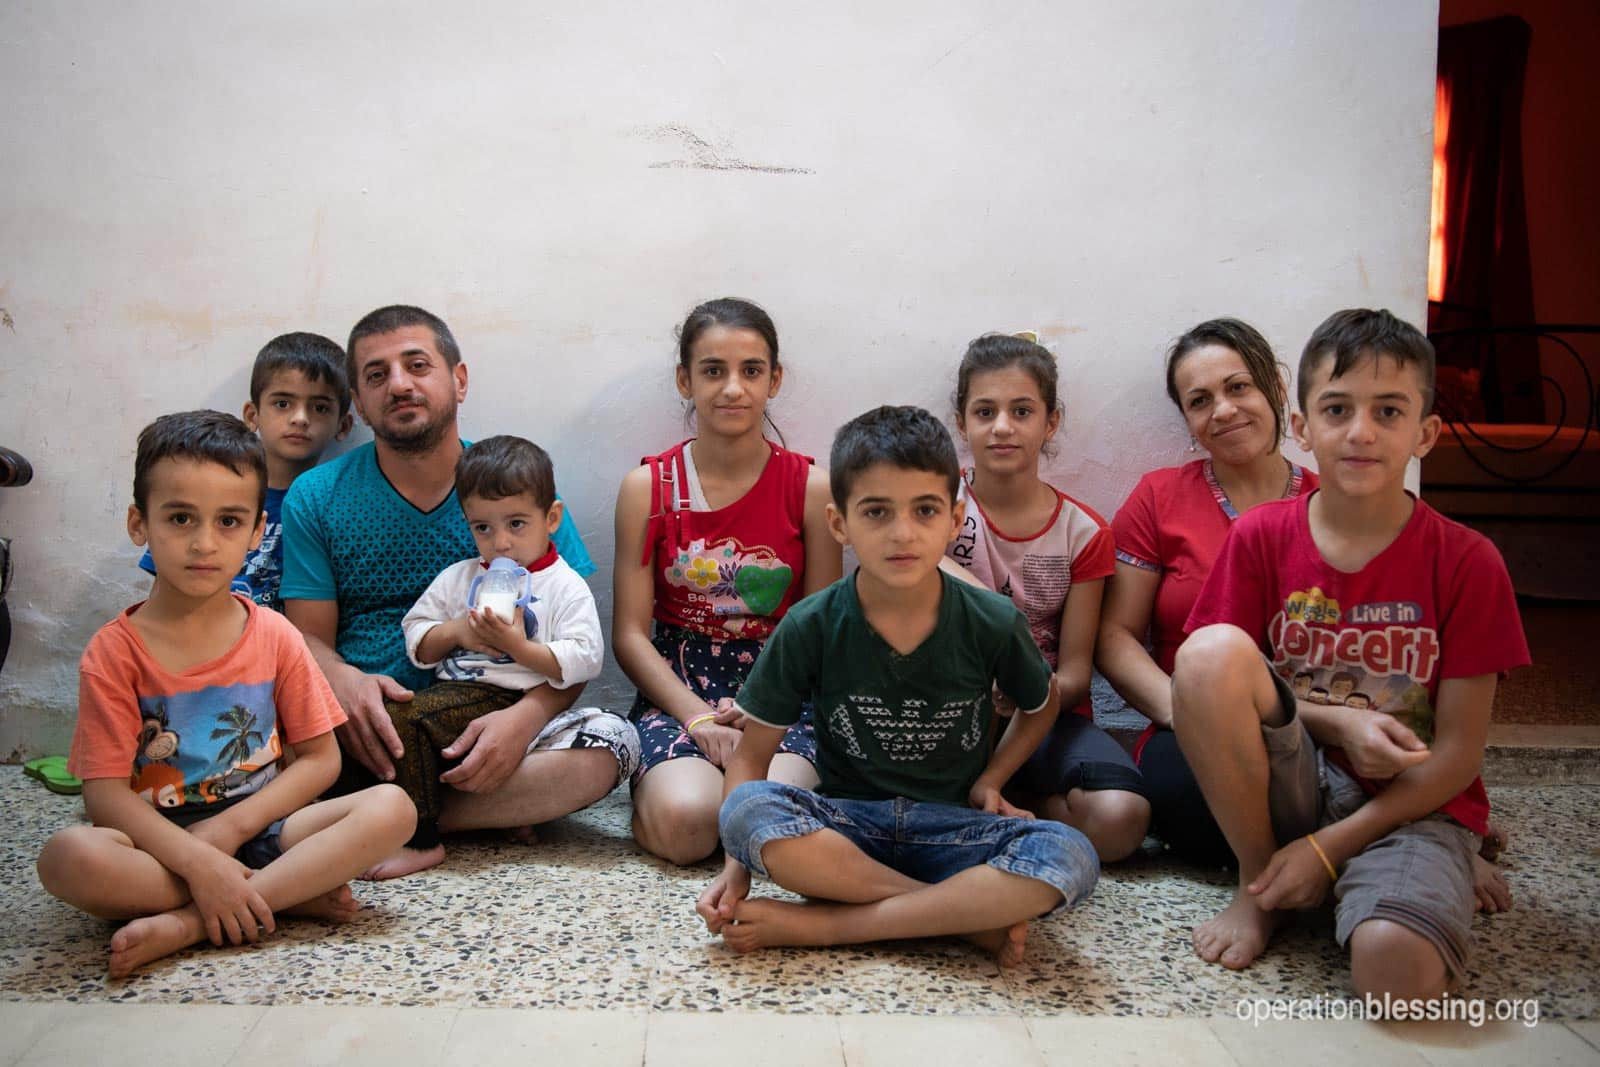 Wisam with his wife and family - persecuted Christians who fled Iraq for a new life in a new land.